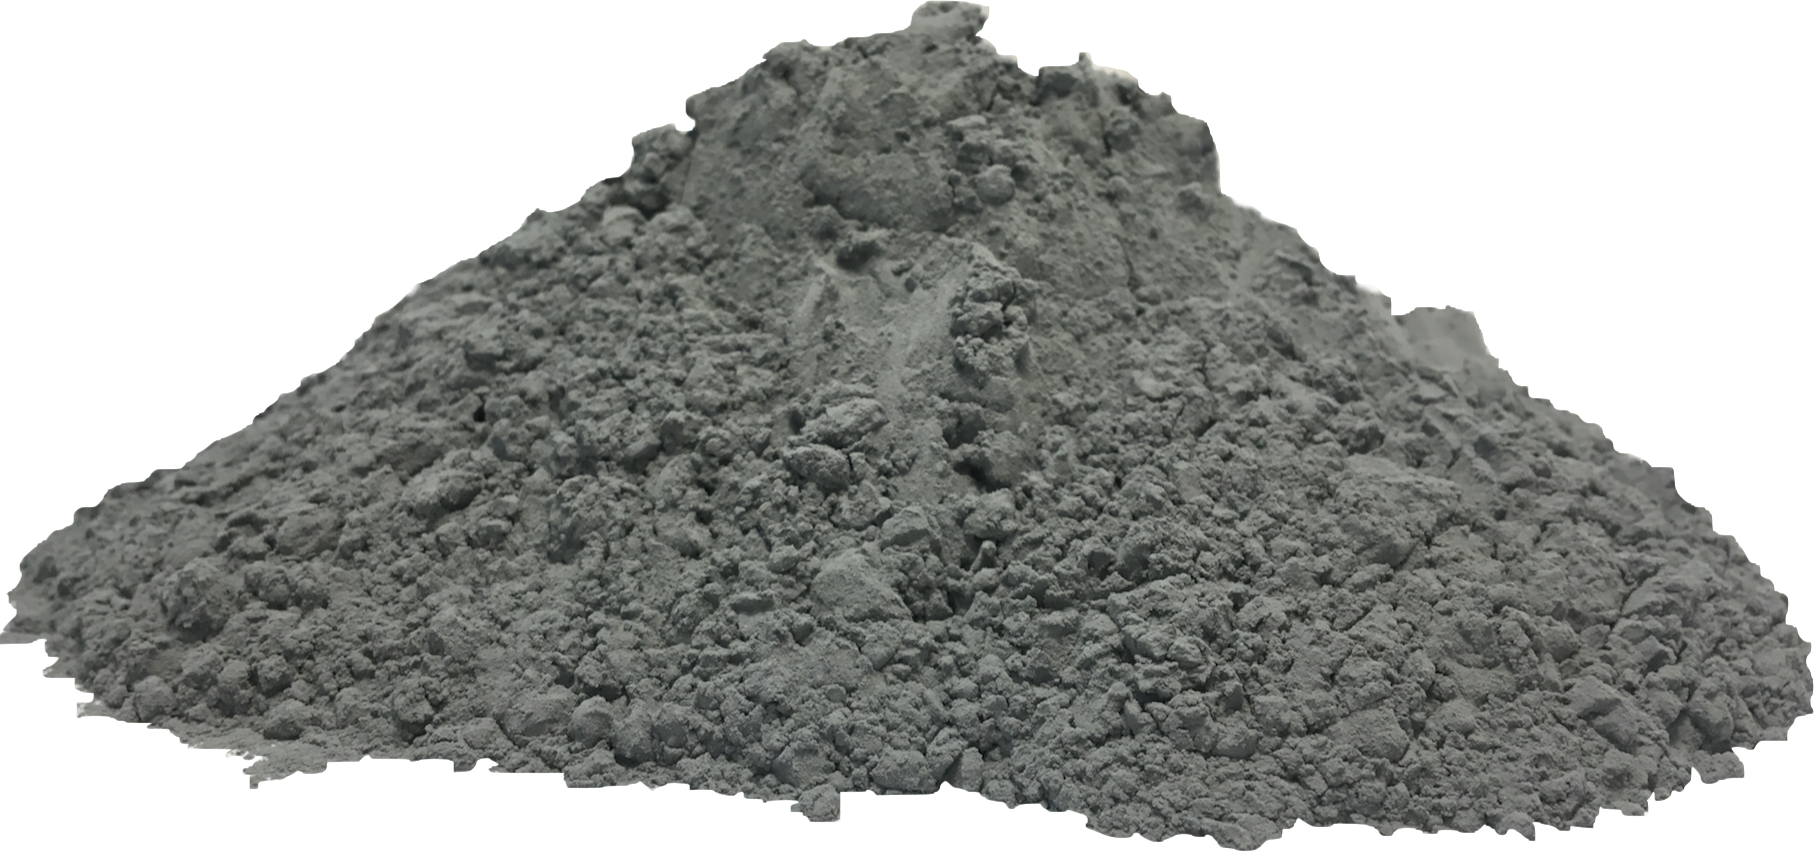 Best mountain limited sicf. Clipart rock volcanic rock